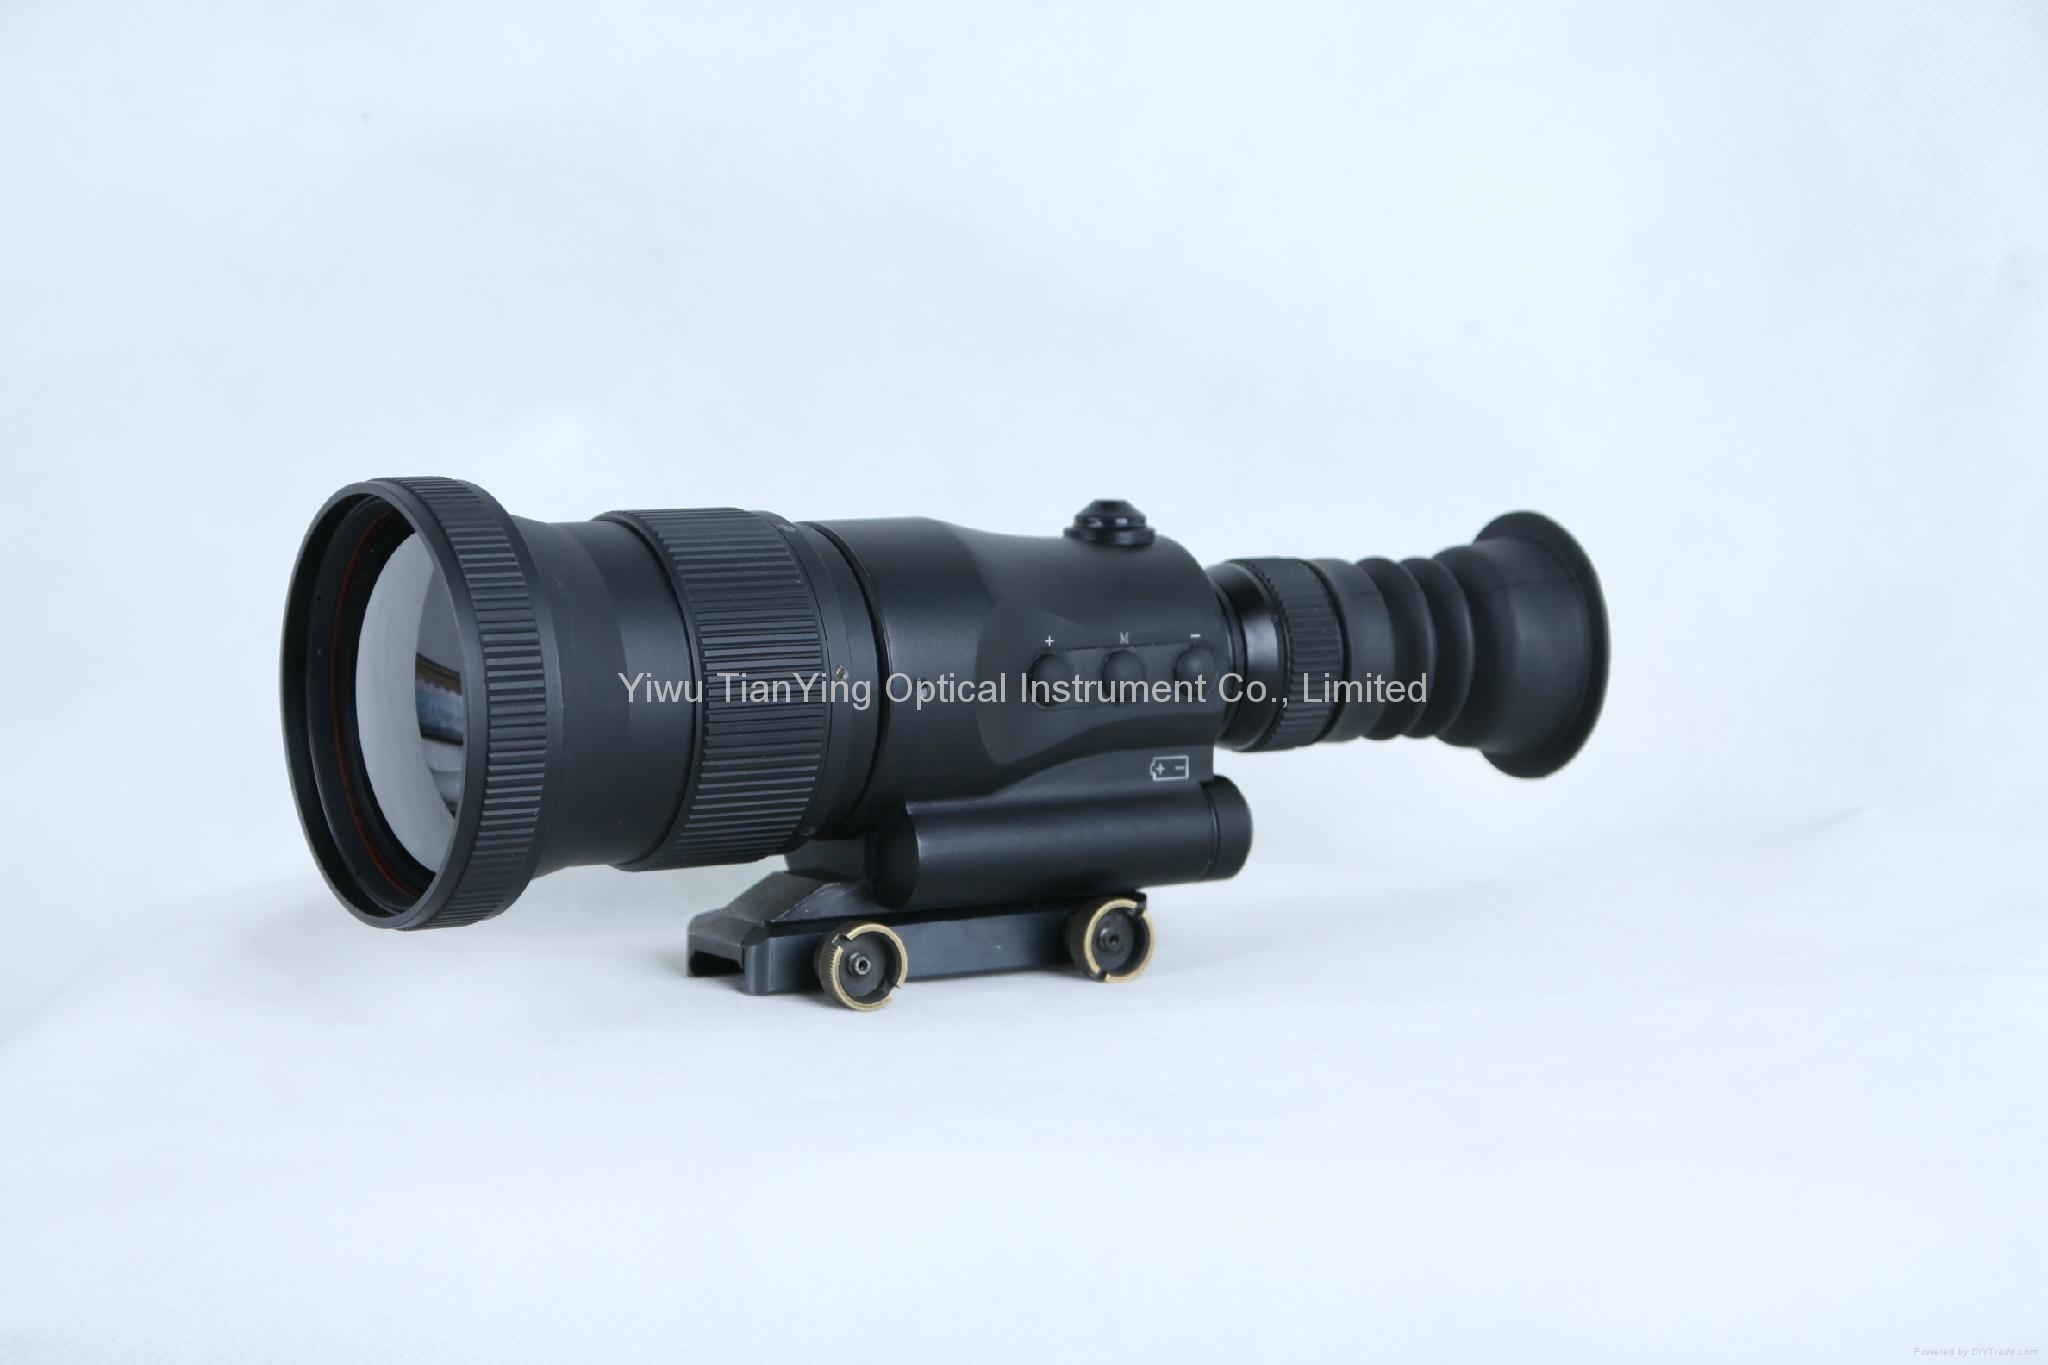 640x480 4.5x 1300m Sniper Thermal Weapon Sights - 5